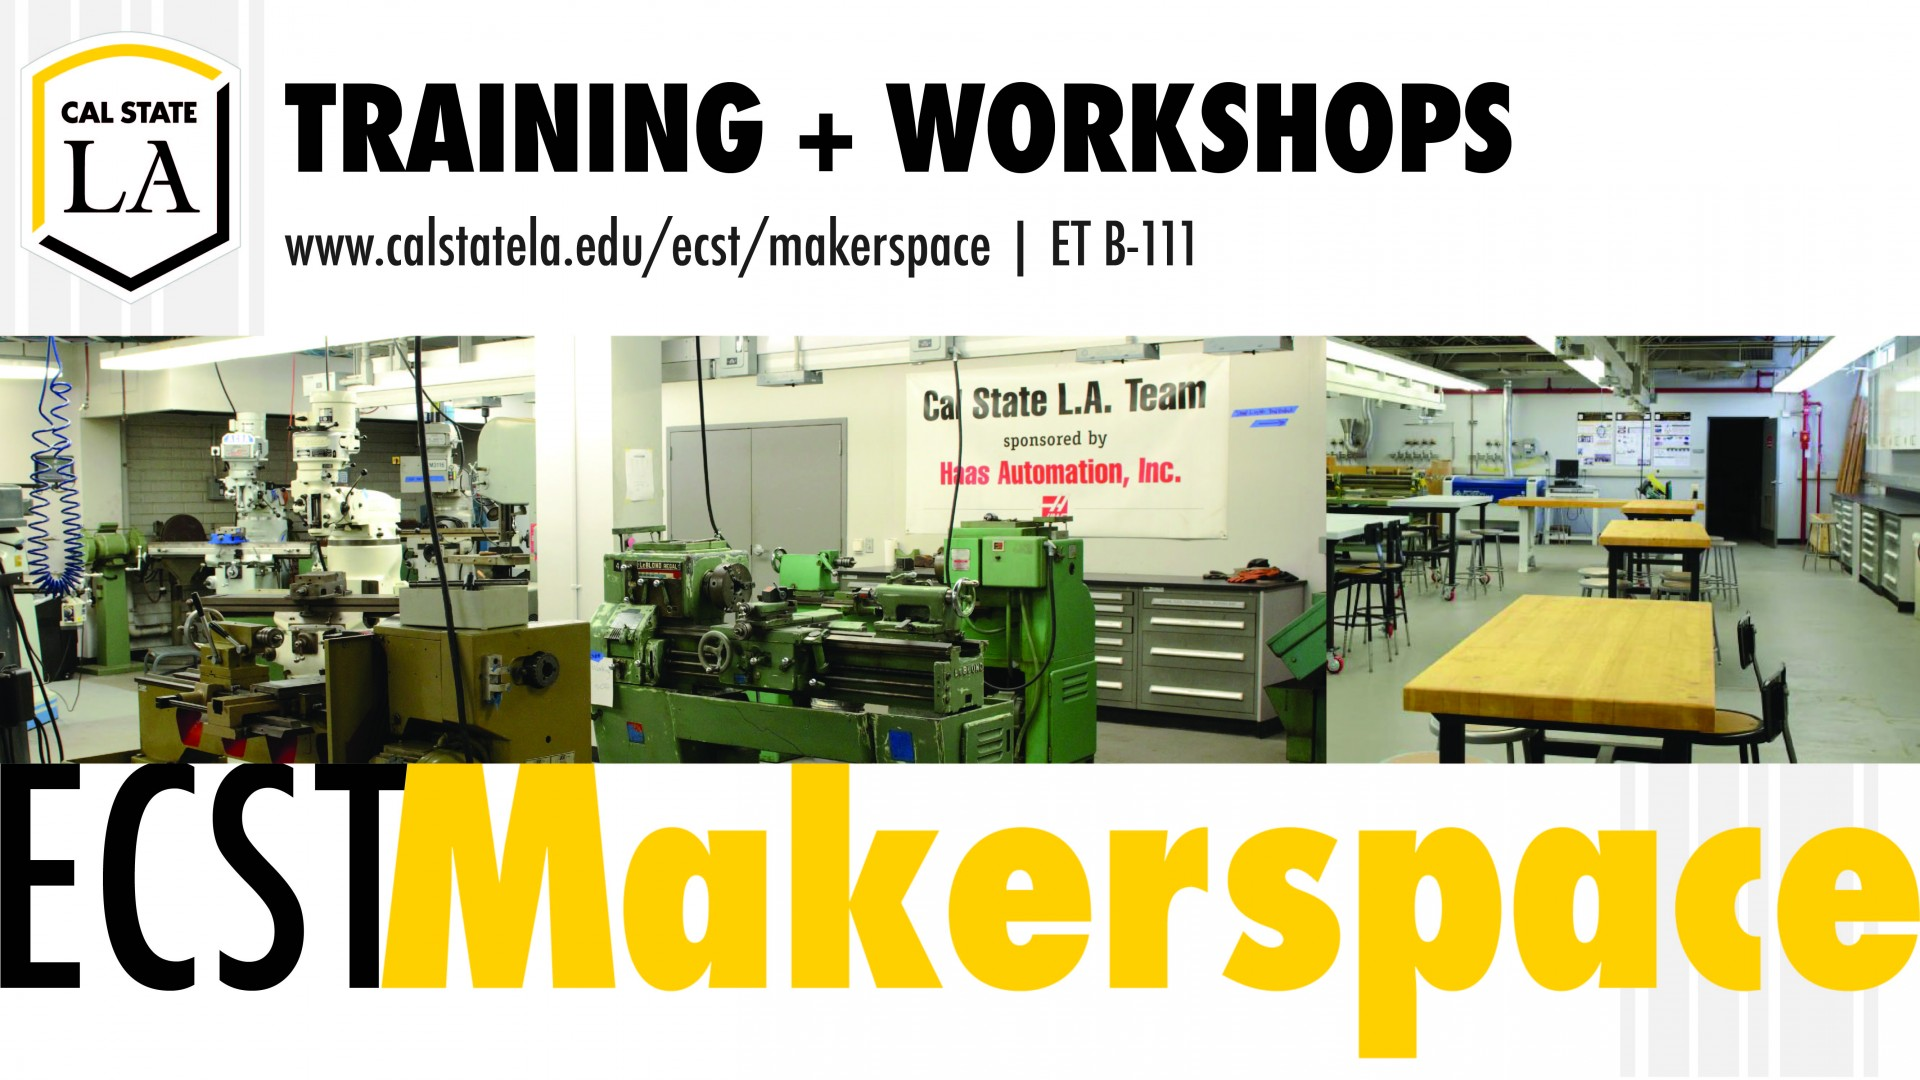 ECST Makerspace Training and Workshops at ET B-111